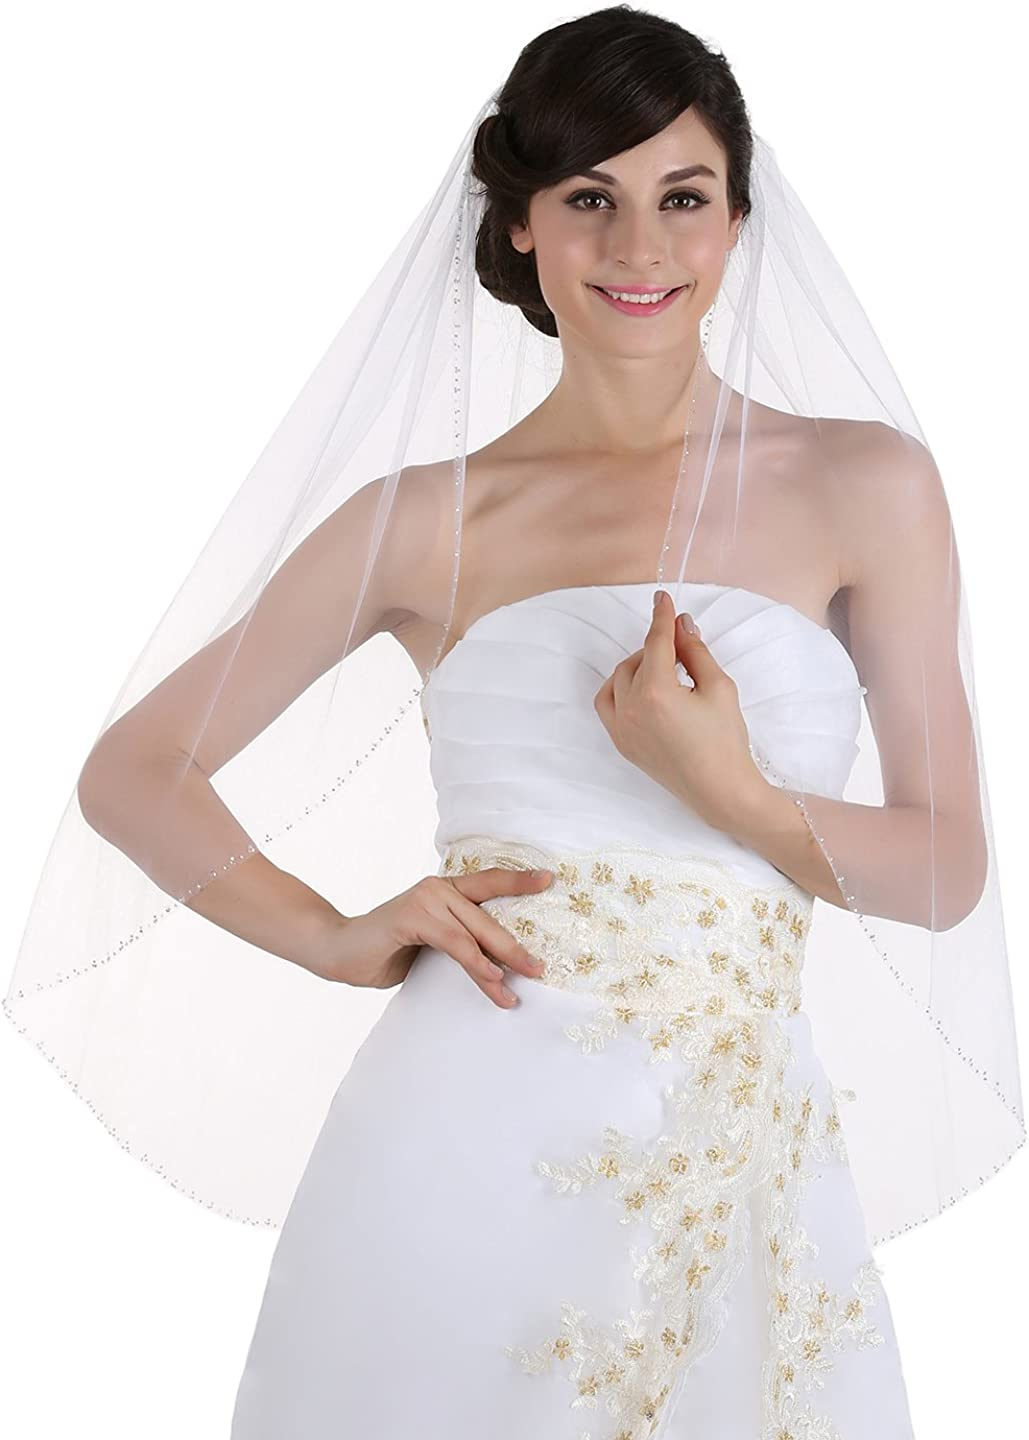 SAMKY 1T 1 Tier Beaded Edge Bridal Wedding Veil